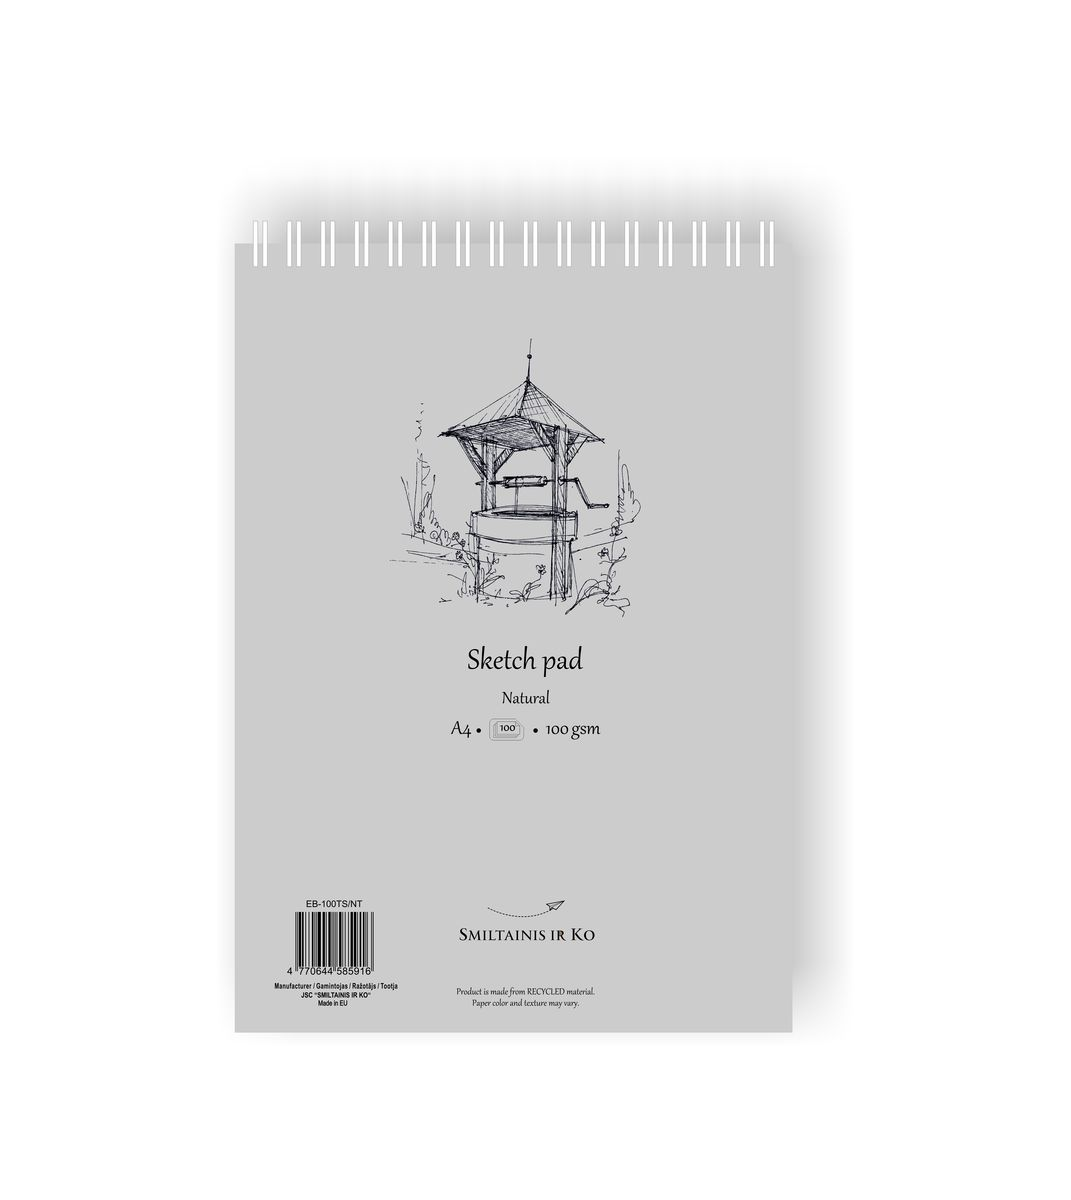 Скетчбук SKETCH PAD NATURAL 100г/кв.м 210х297мм, 100л, на спирали по 730.00 руб от SM-LT